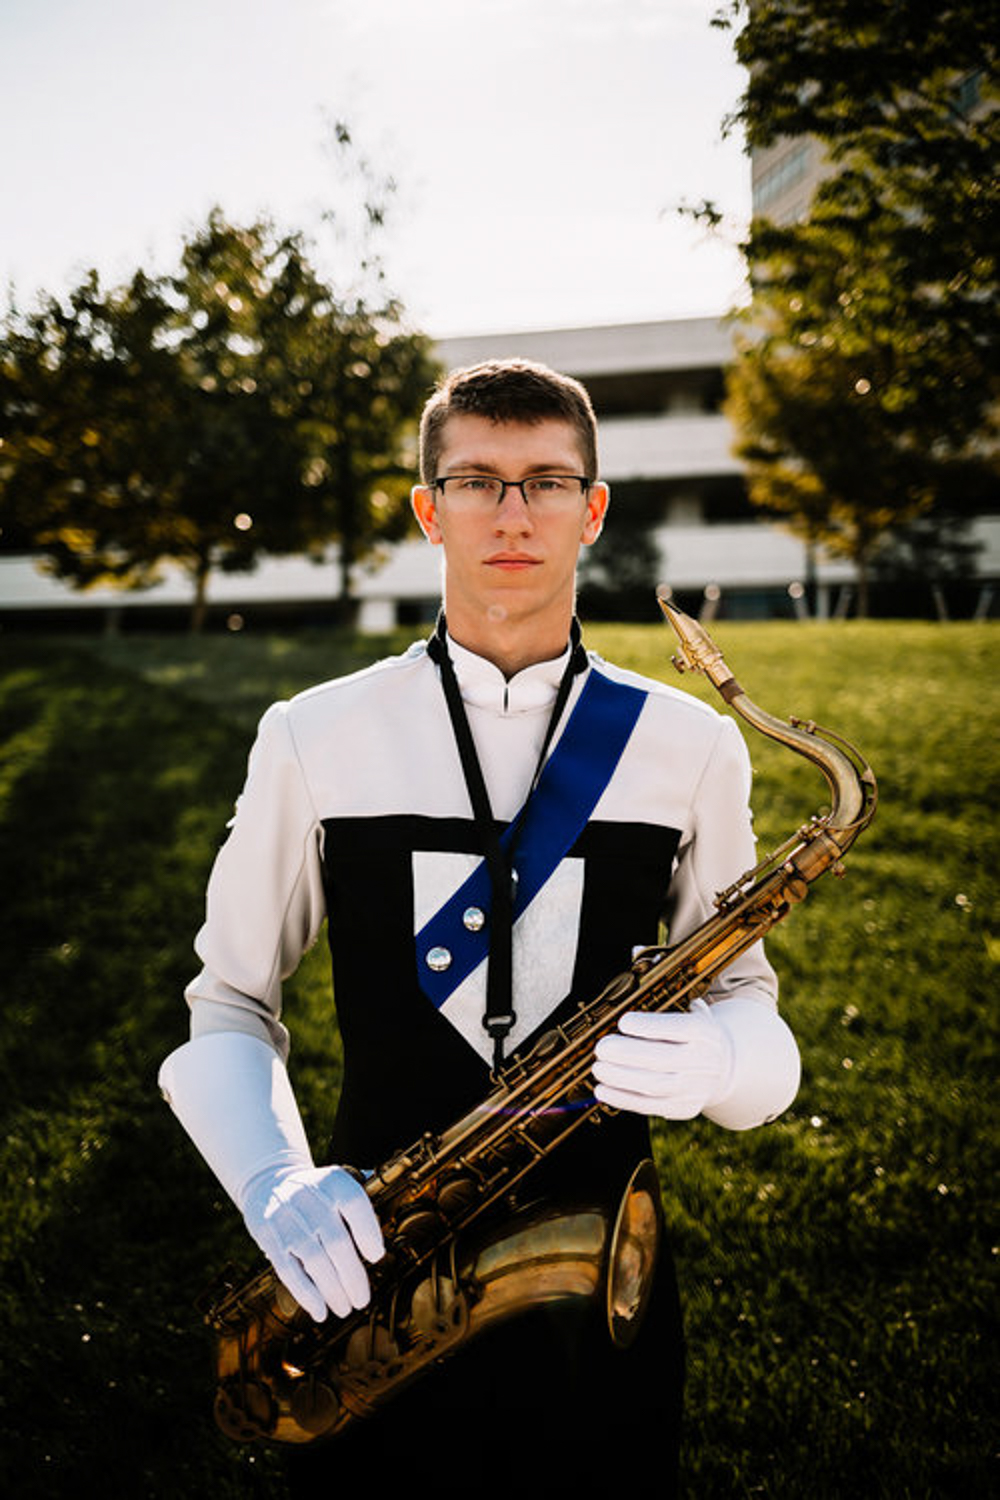 TaylorLaurenPhoto_Columbus_Ohio_Senior_Pictures-15.jpg